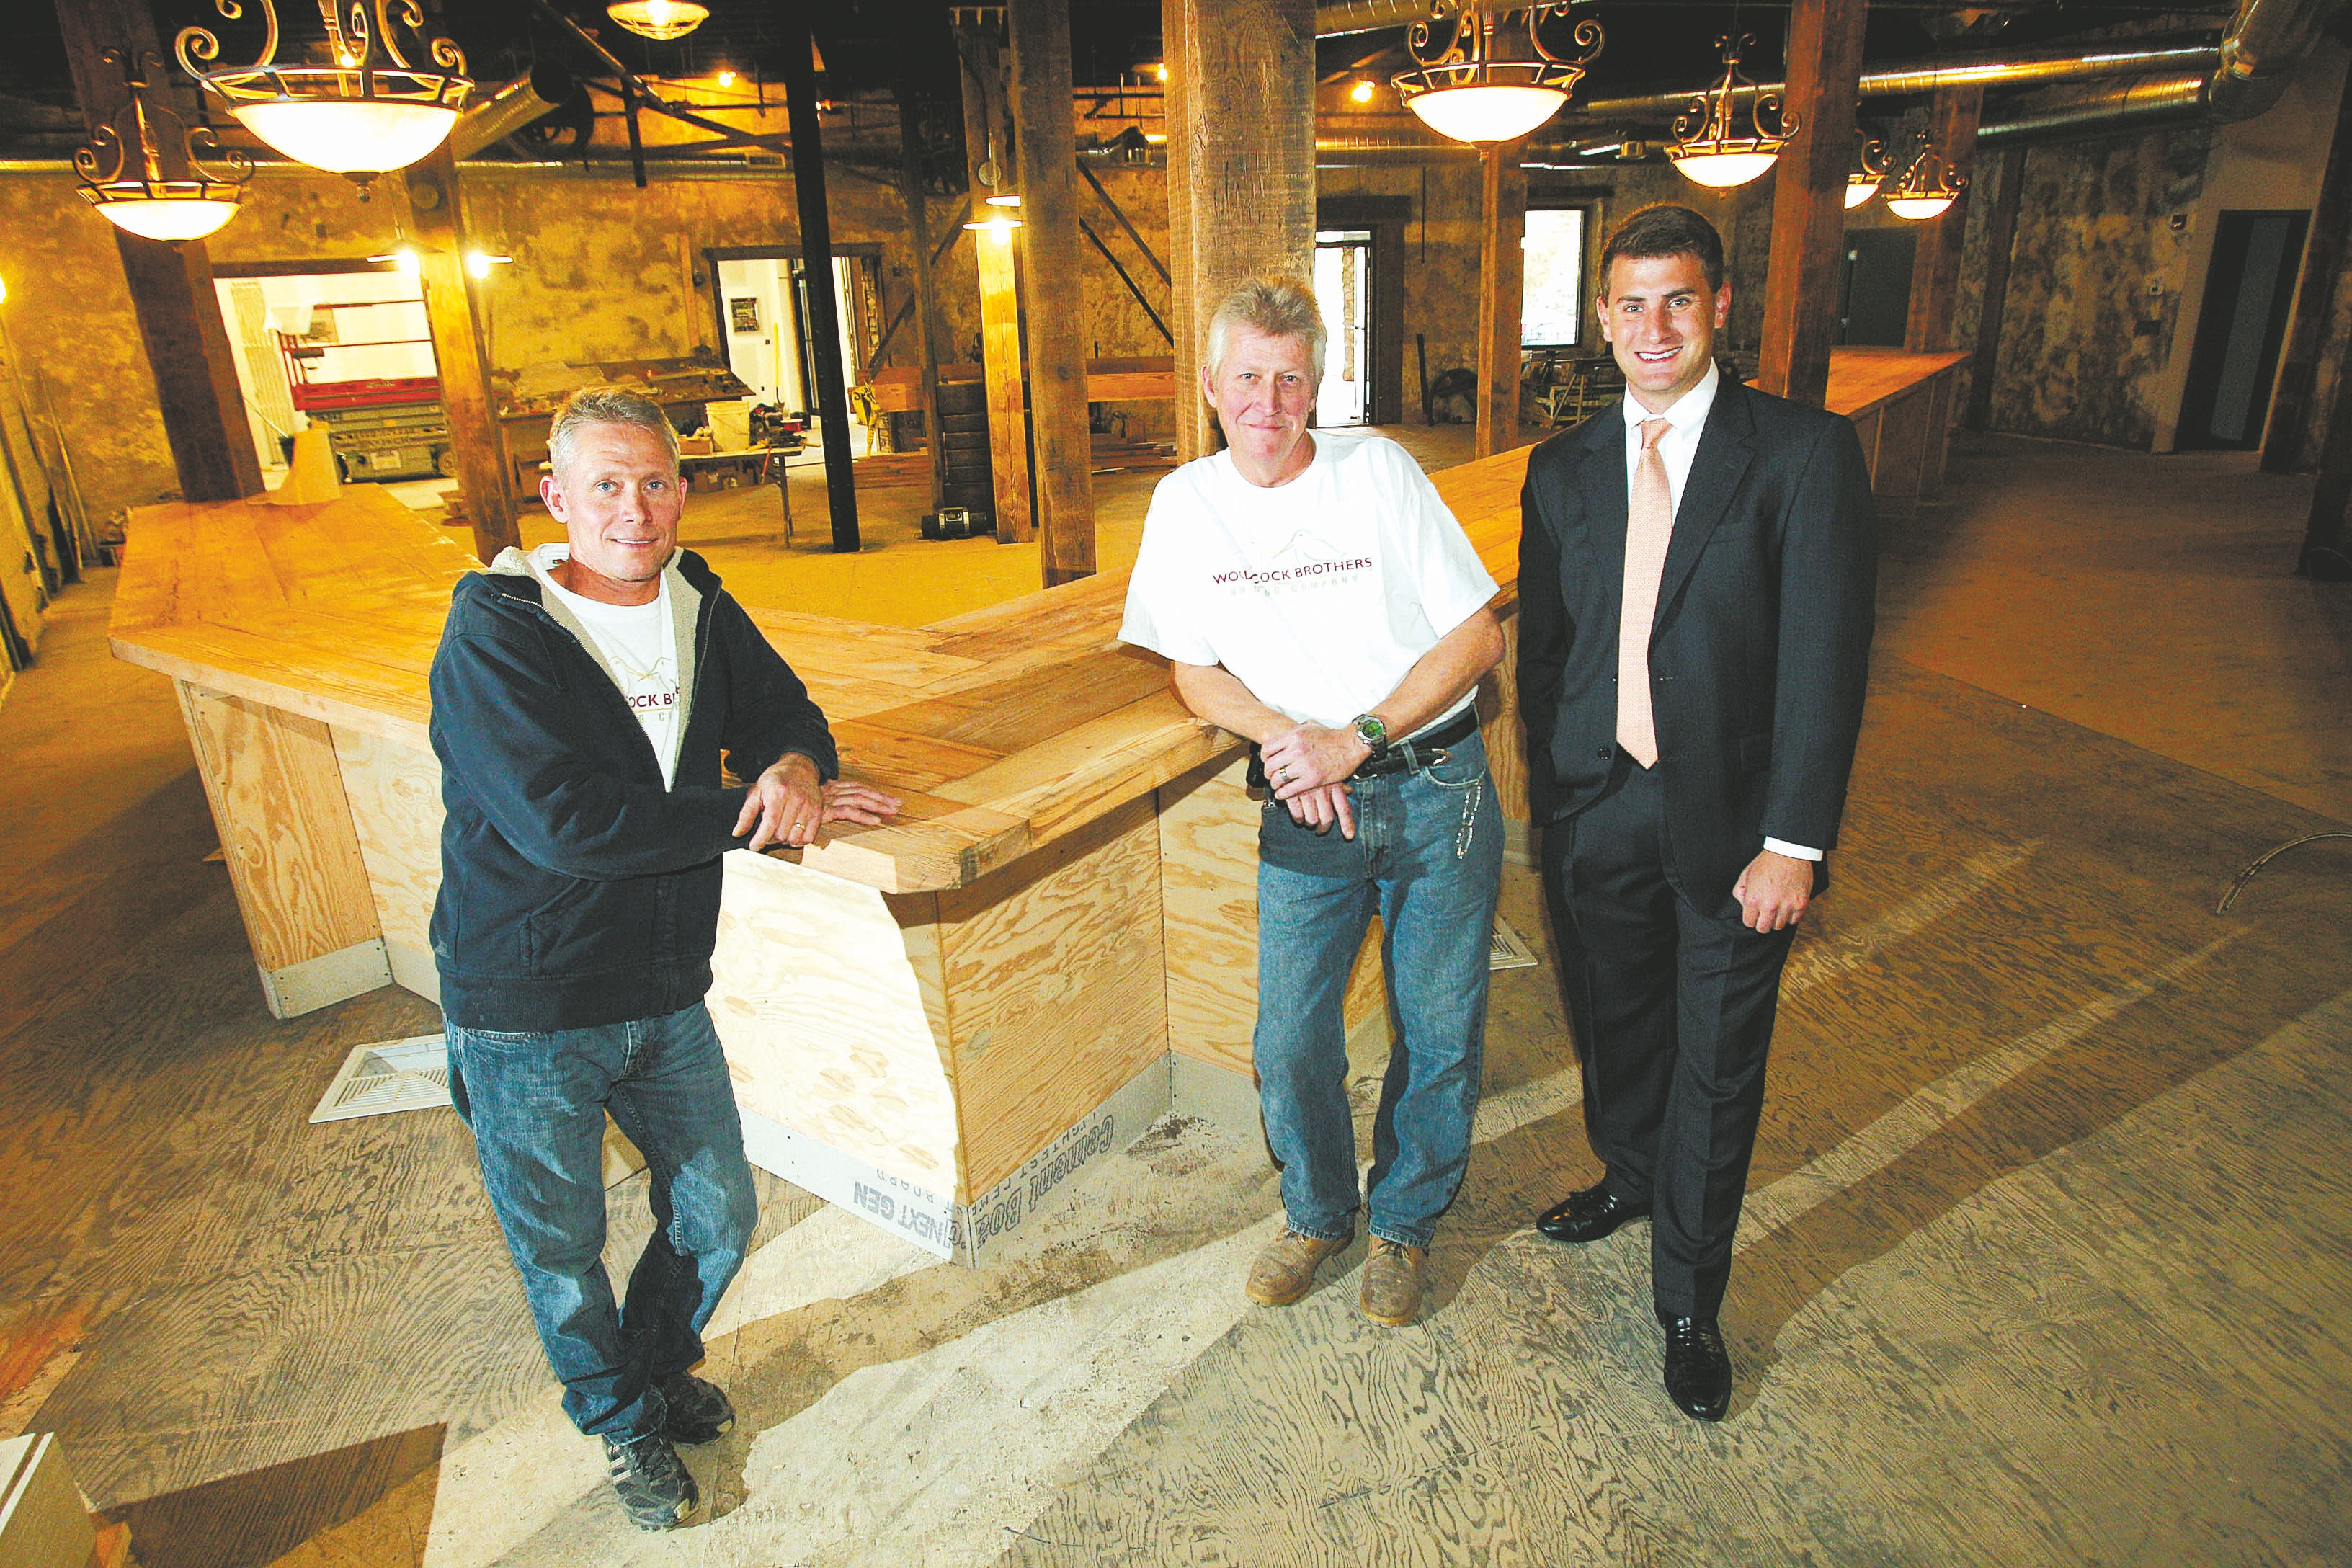 Brothers Tim Woodcock, left, and Mark Woodcock, center, got a loan from M&T for their brewery, Woodcock Brothers Brewing Co. in Wilson. With them is Jerome Baier of M&T Bank.